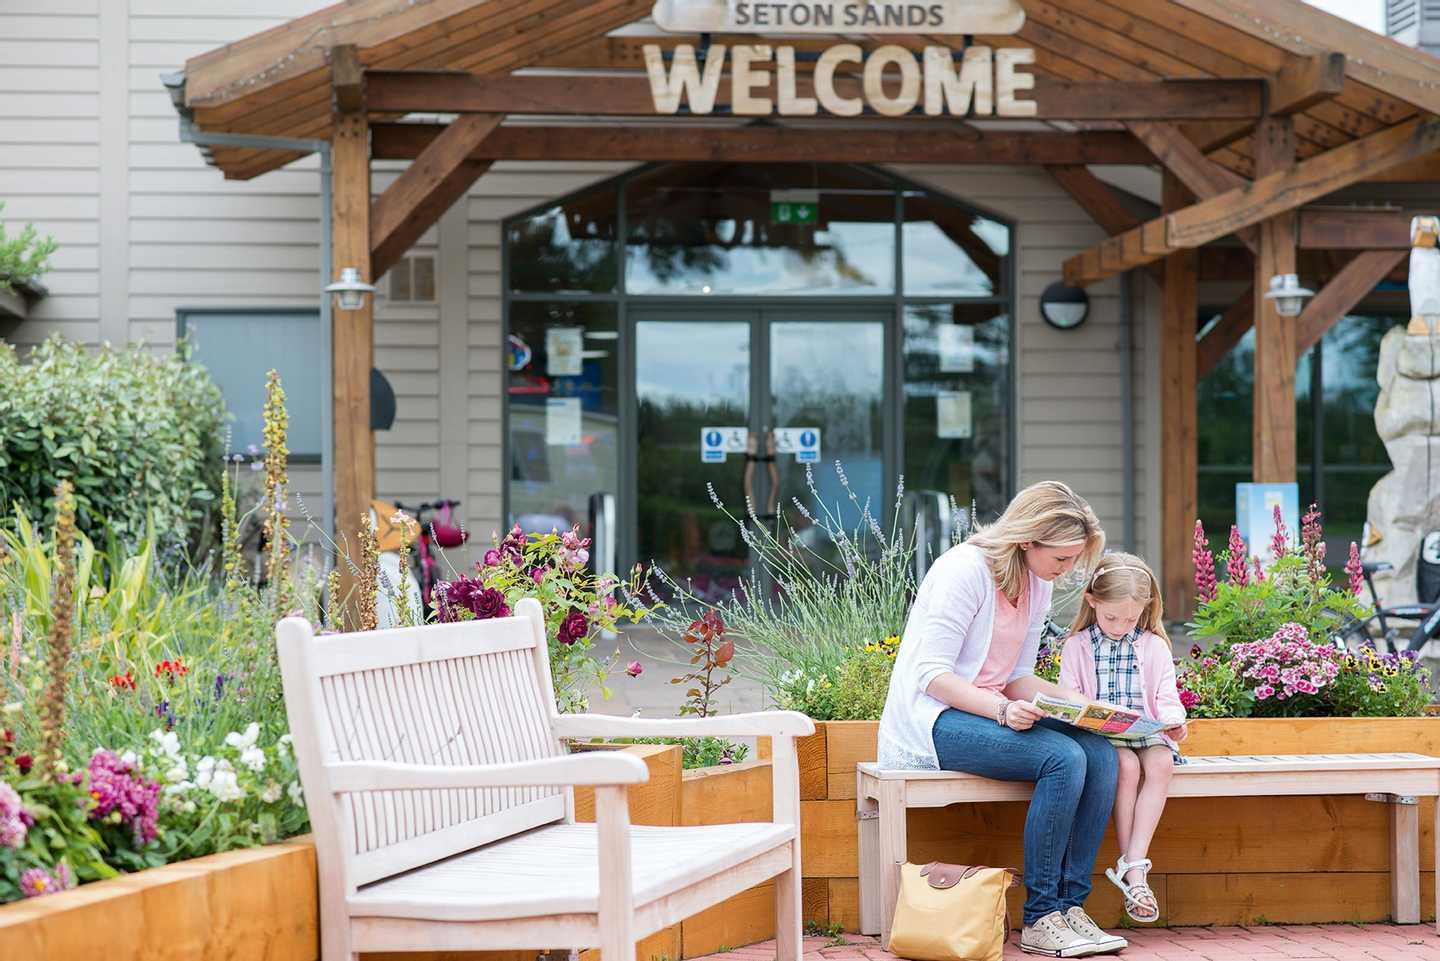 Mother and Daughter sitting on a bench near the entrance to Seton Sands Holiday Village